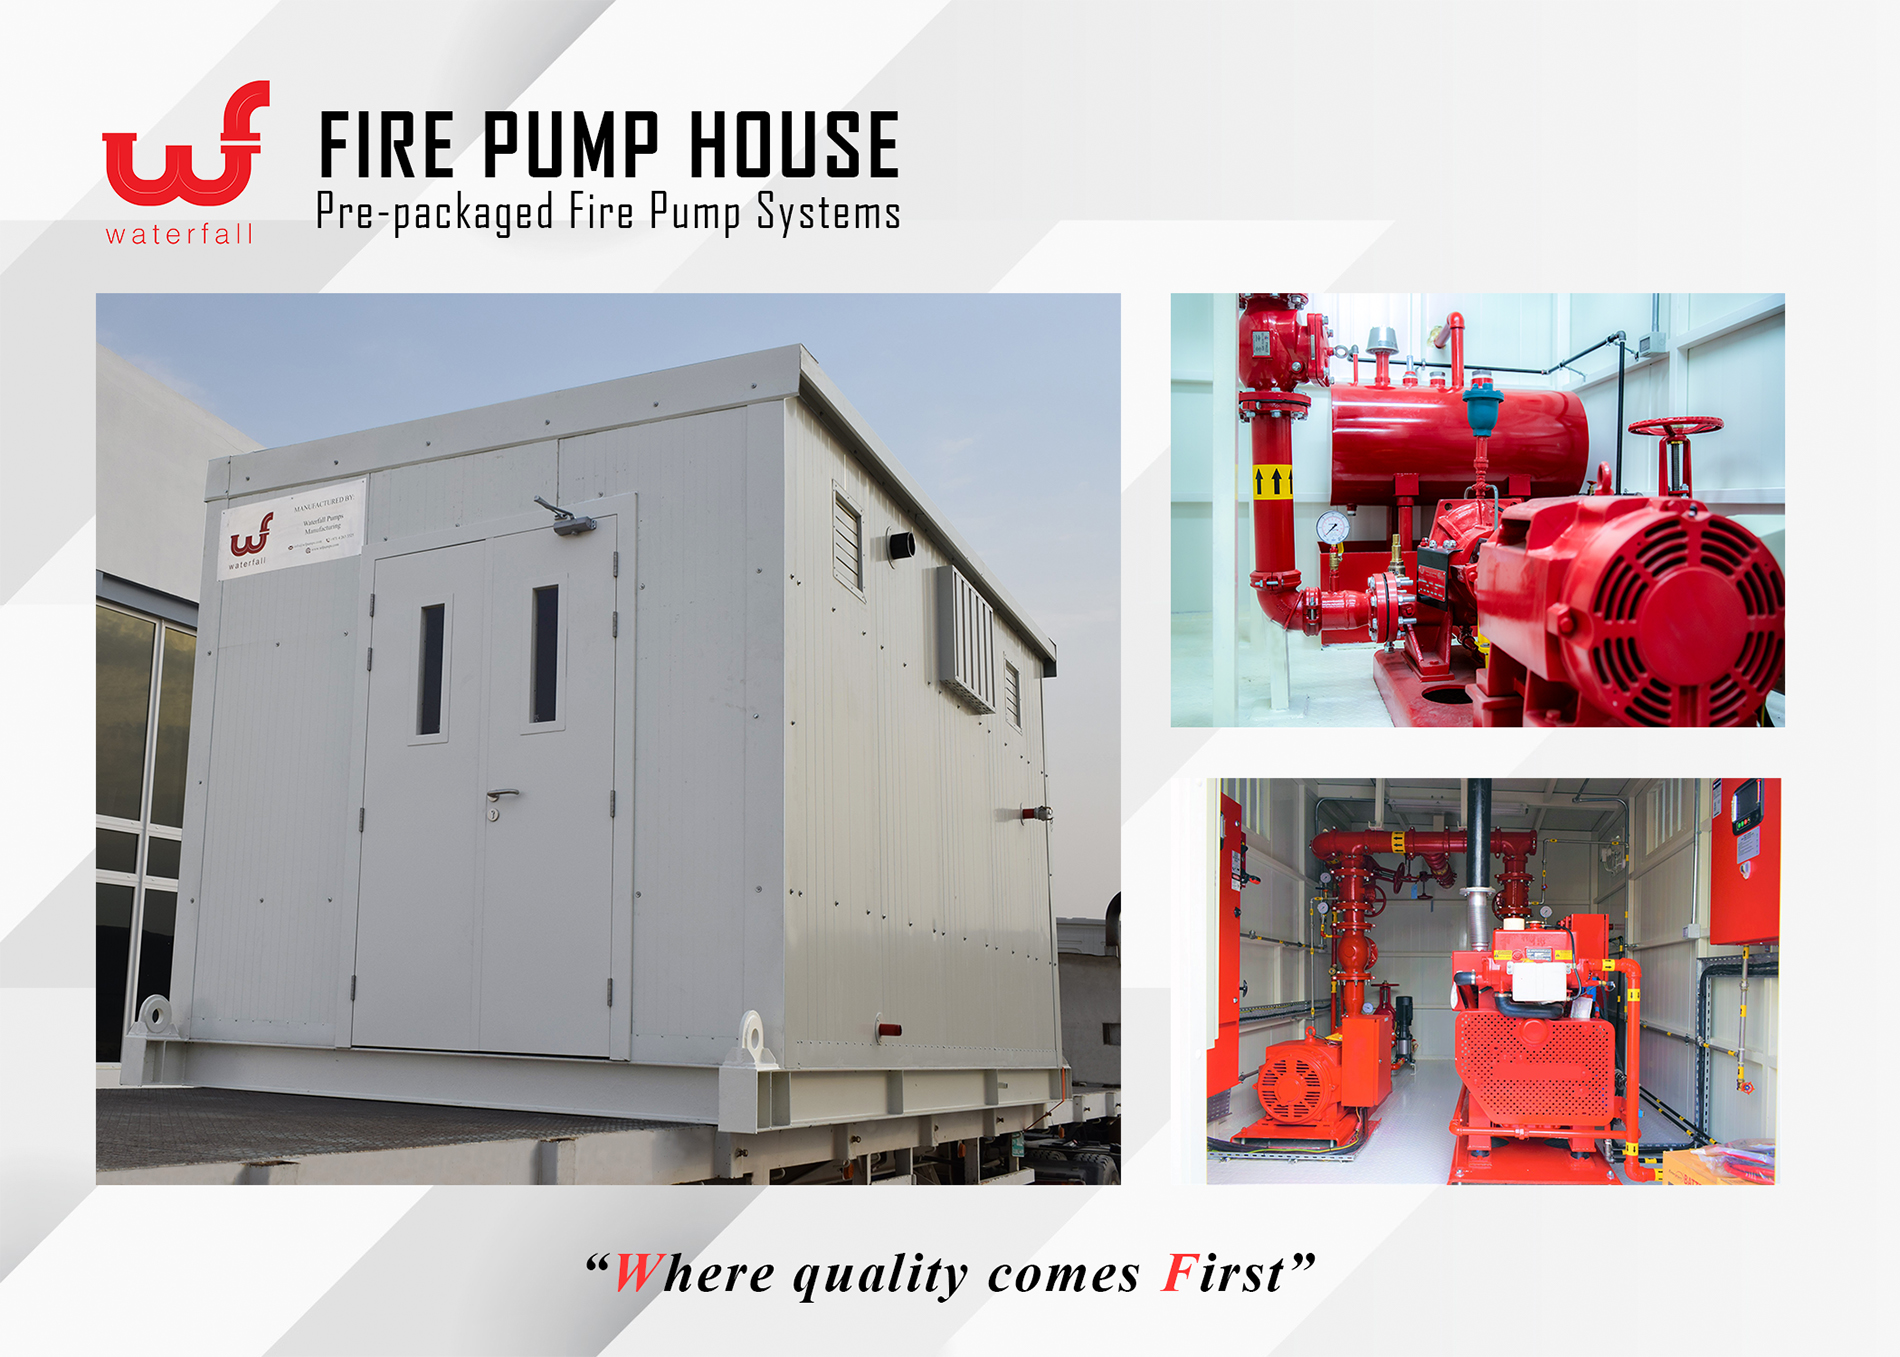 WATERFALL PUMPS MANUFACTURING, WF Fire Pump House (Pre-packaged Fire Systems)